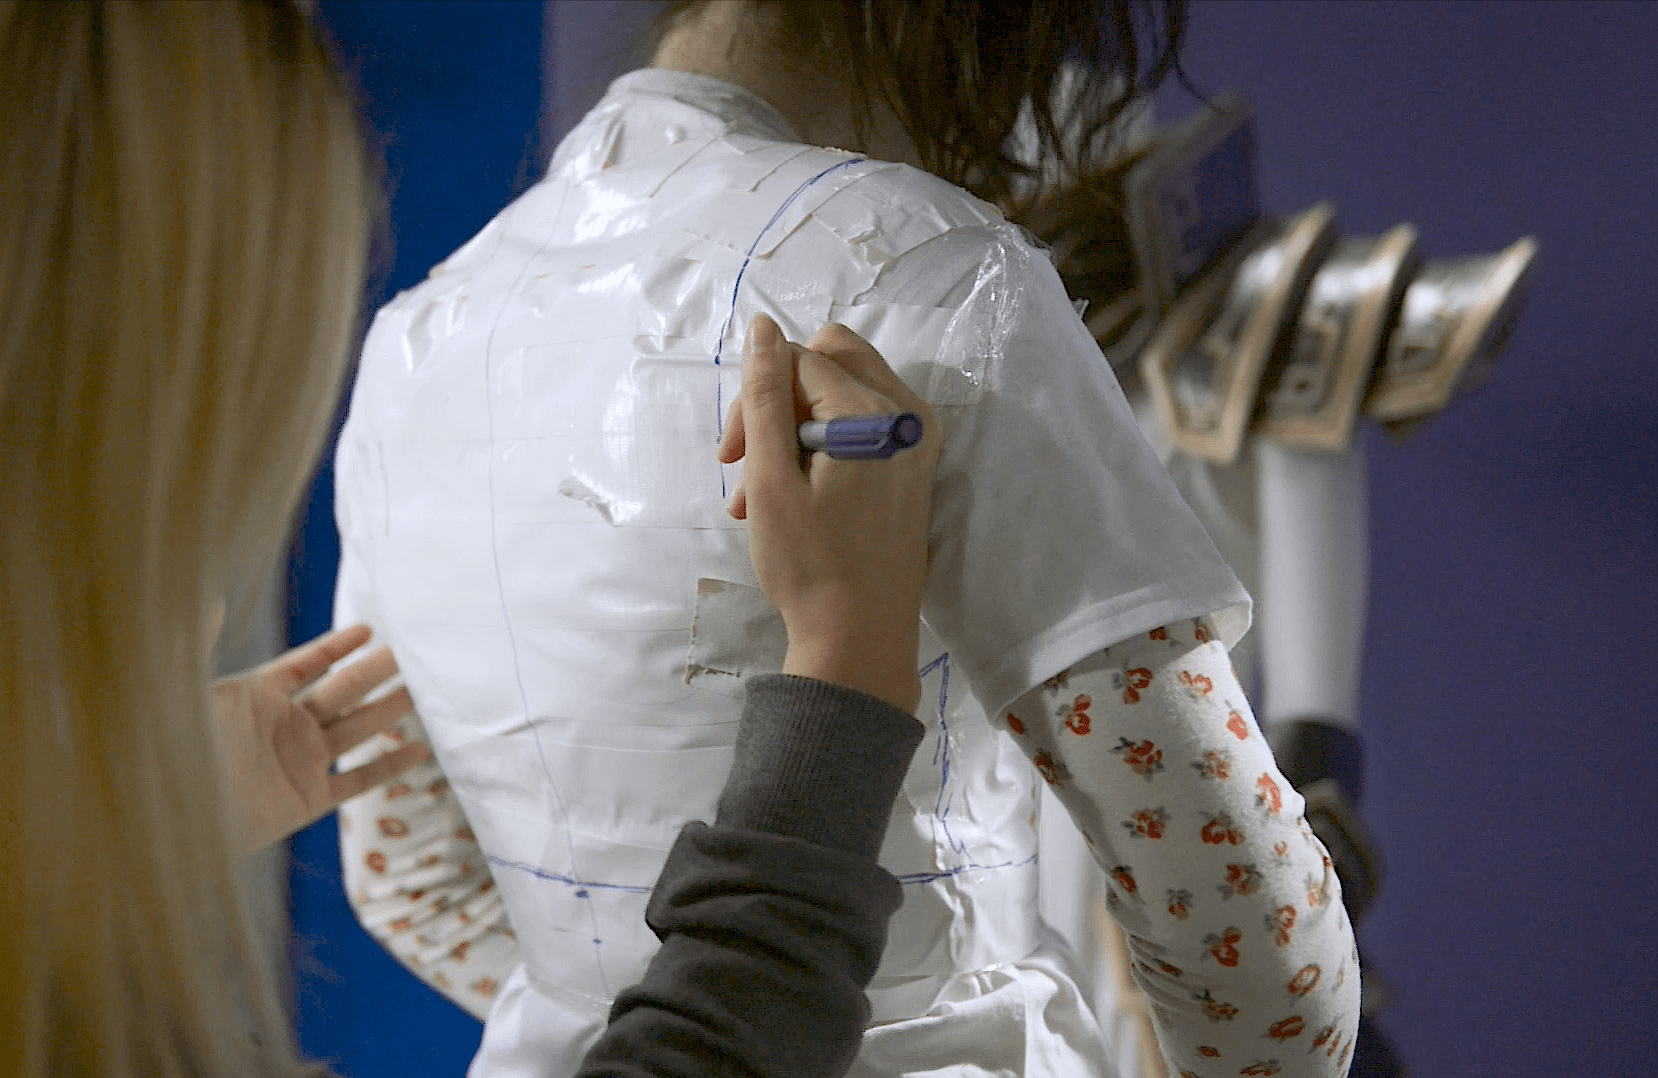 Drawing cosplay armor pattern onto tape cast